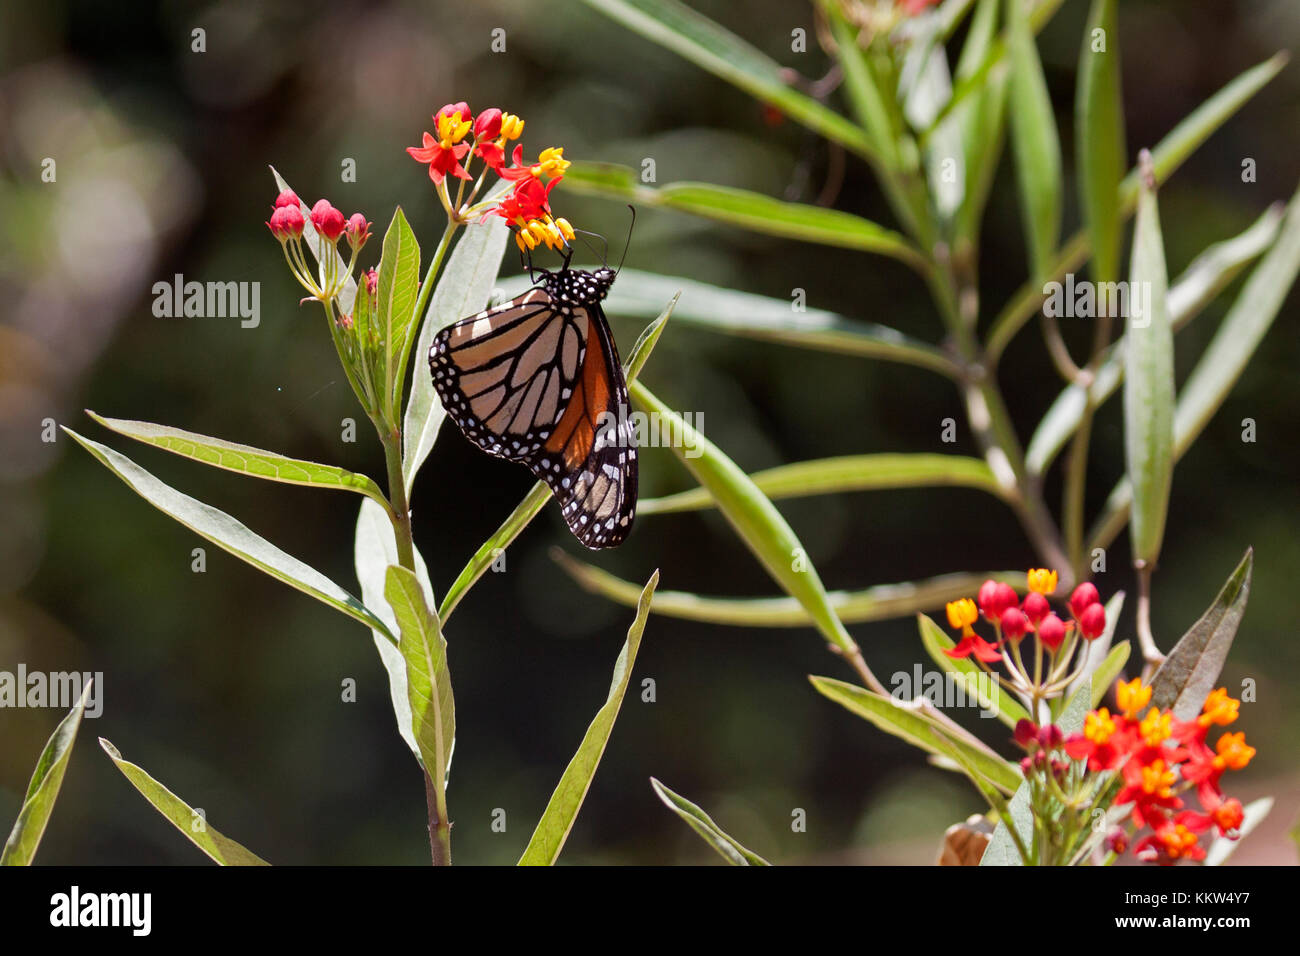 Monarch butterfly feeding on flowers in Queensland Australia - Stock Image